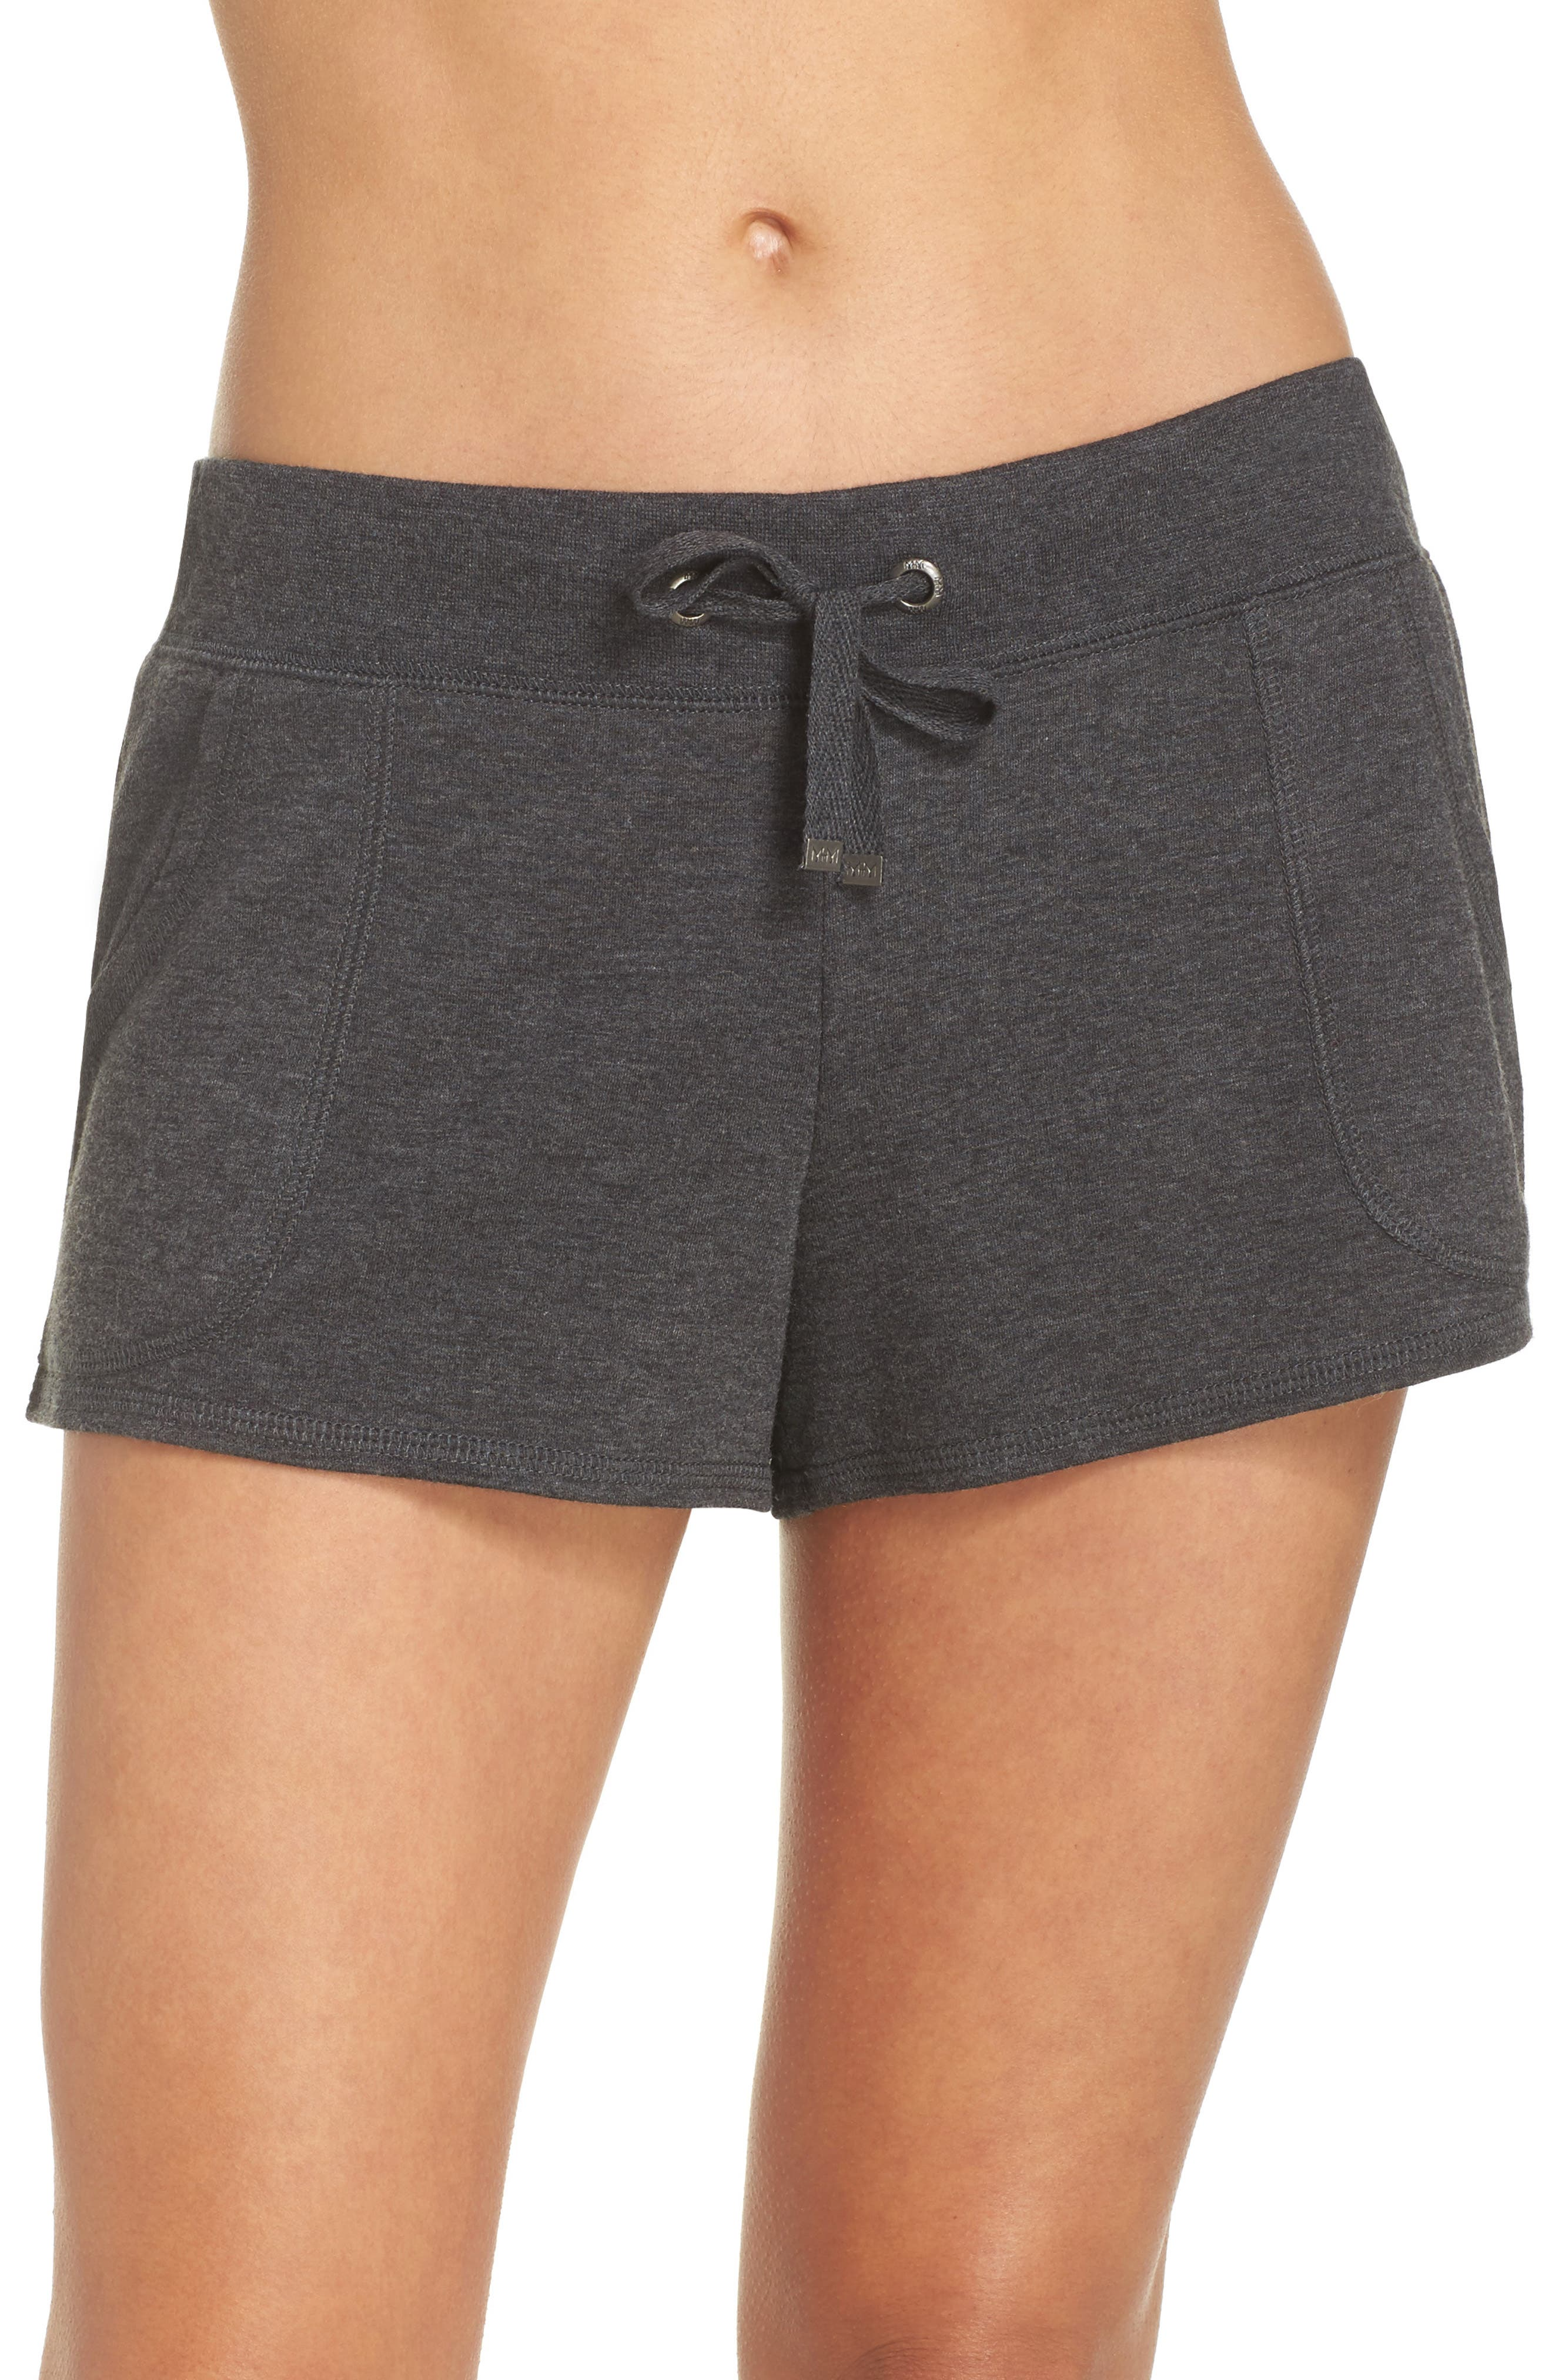 Down To The Details Lounge Shorts,                         Main,                         color, 030